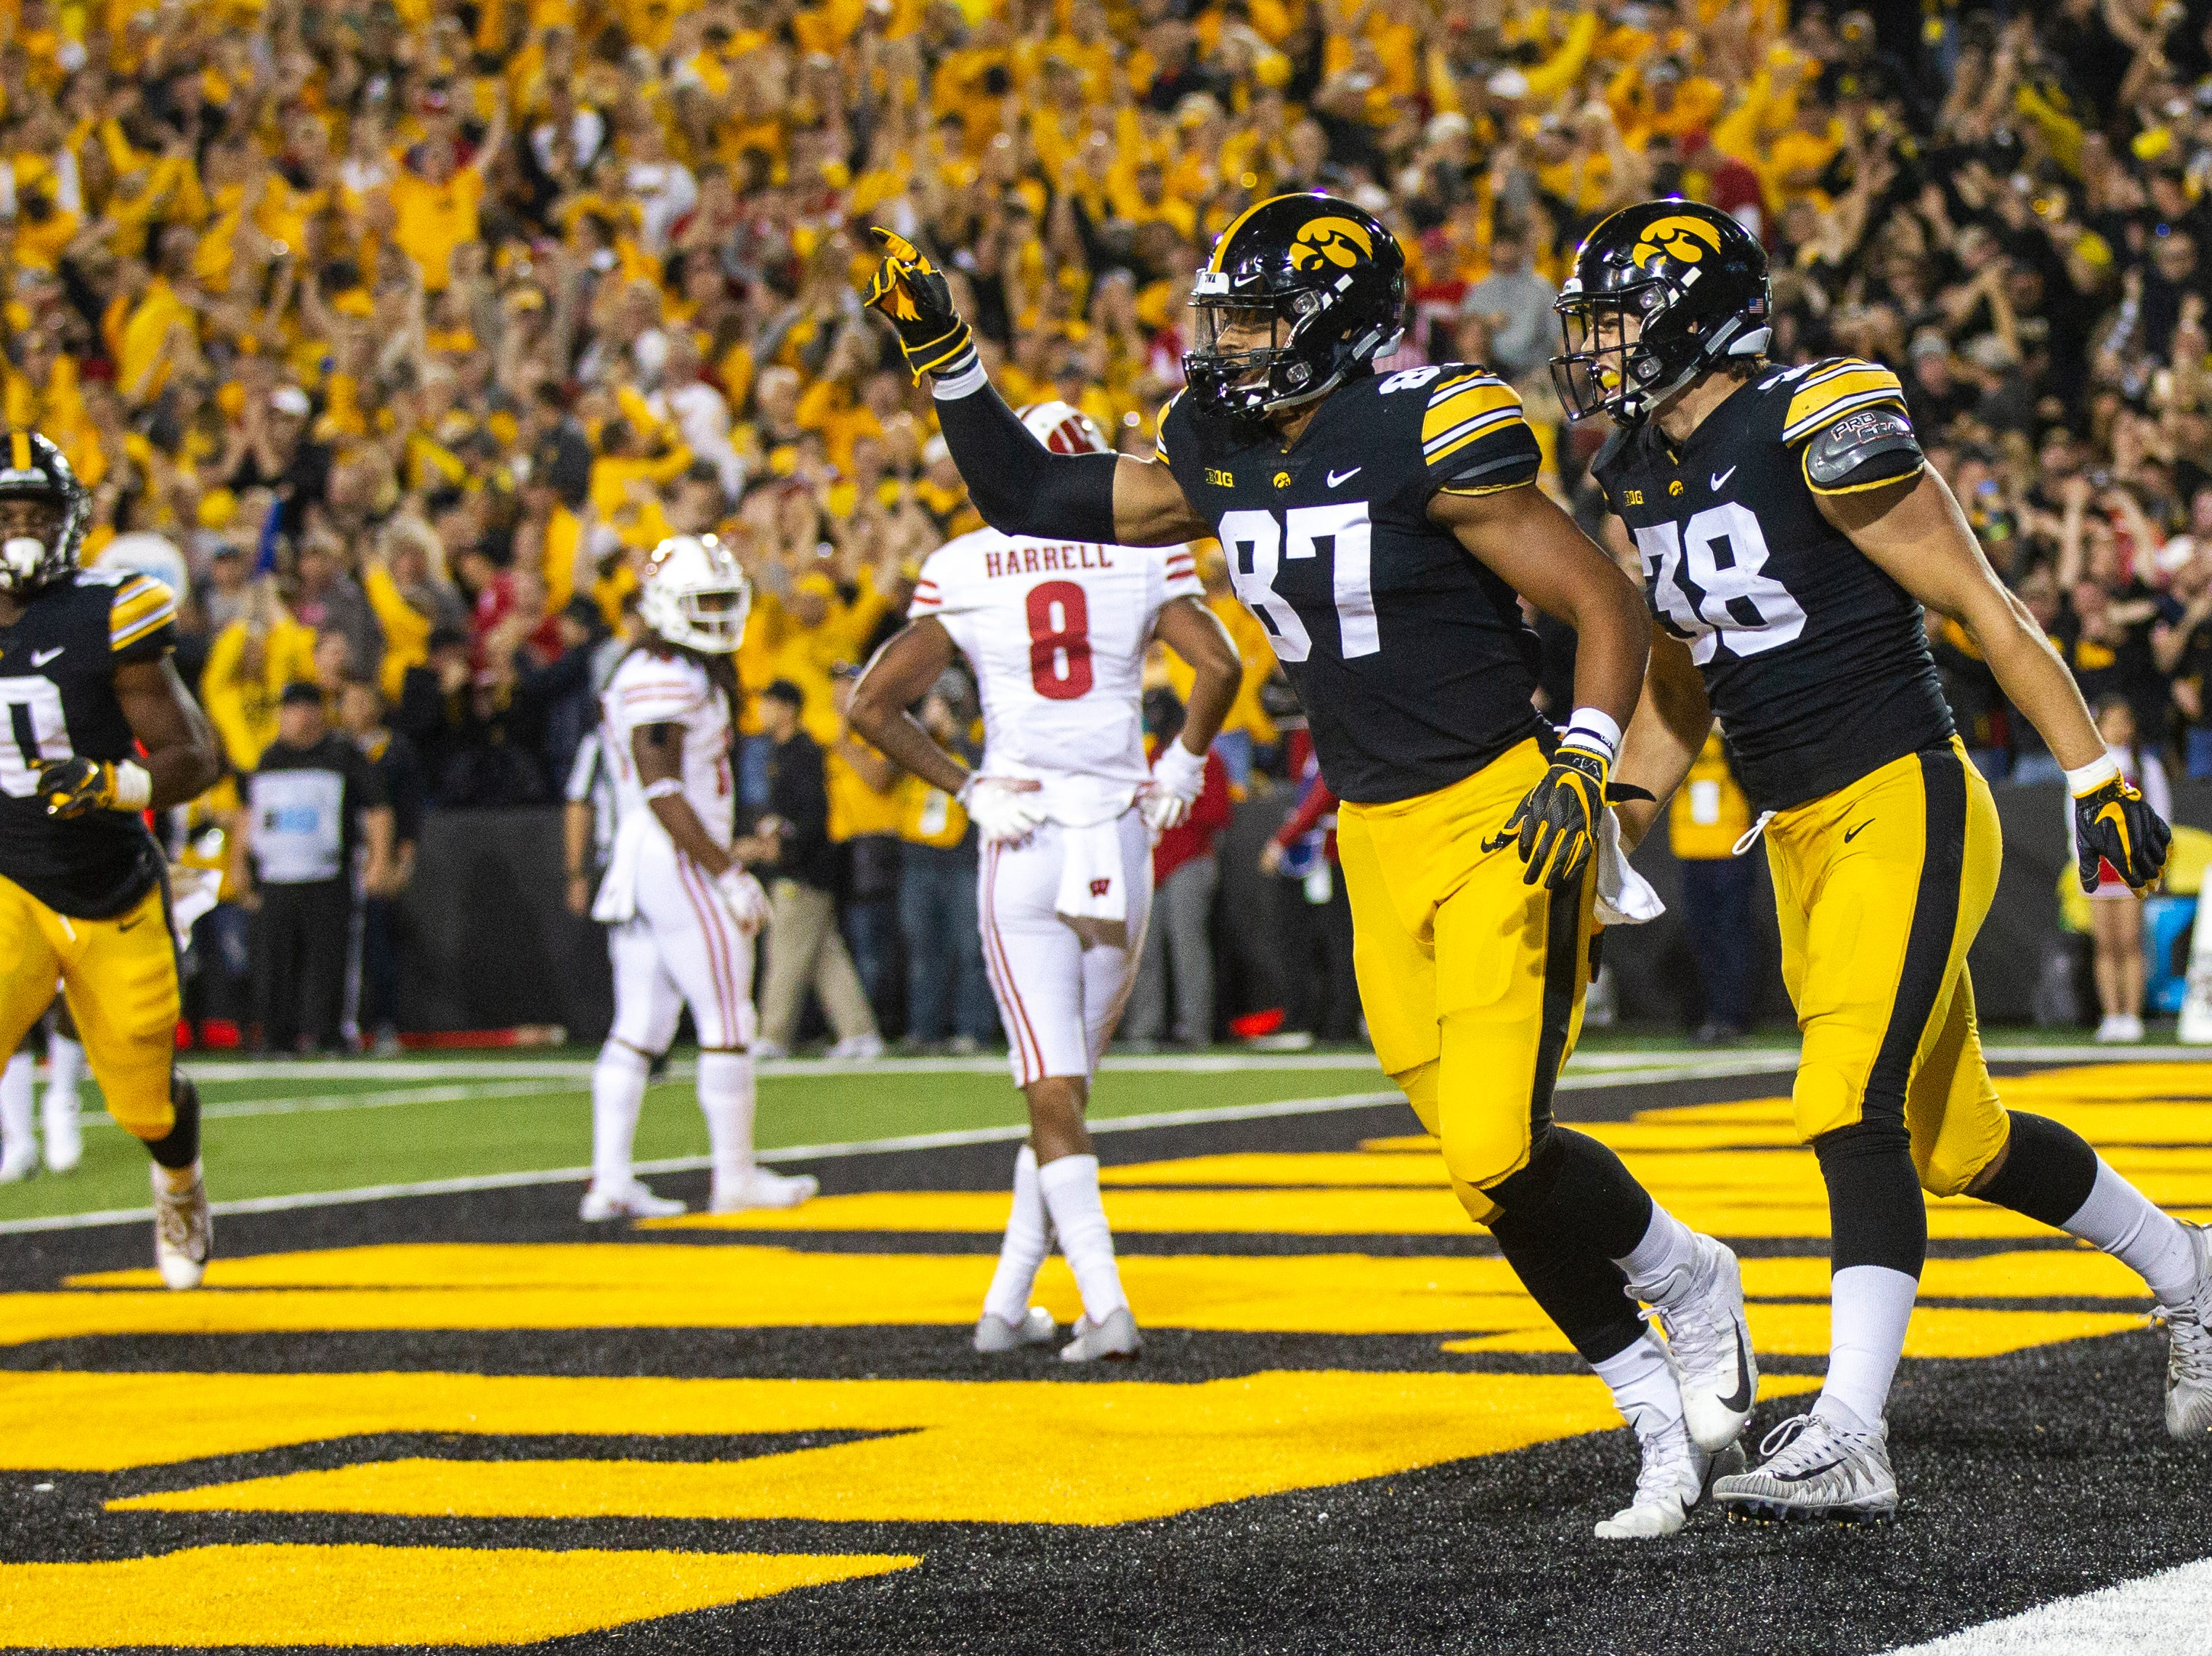 Iowa tight end Noah Fant (87) celebrates after his touchdown with Iowa tight end T.J. Hockenson (38) during an NCAA football game on Saturday, Sept. 22, 2018, at Kinnick Stadium in Iowa City.